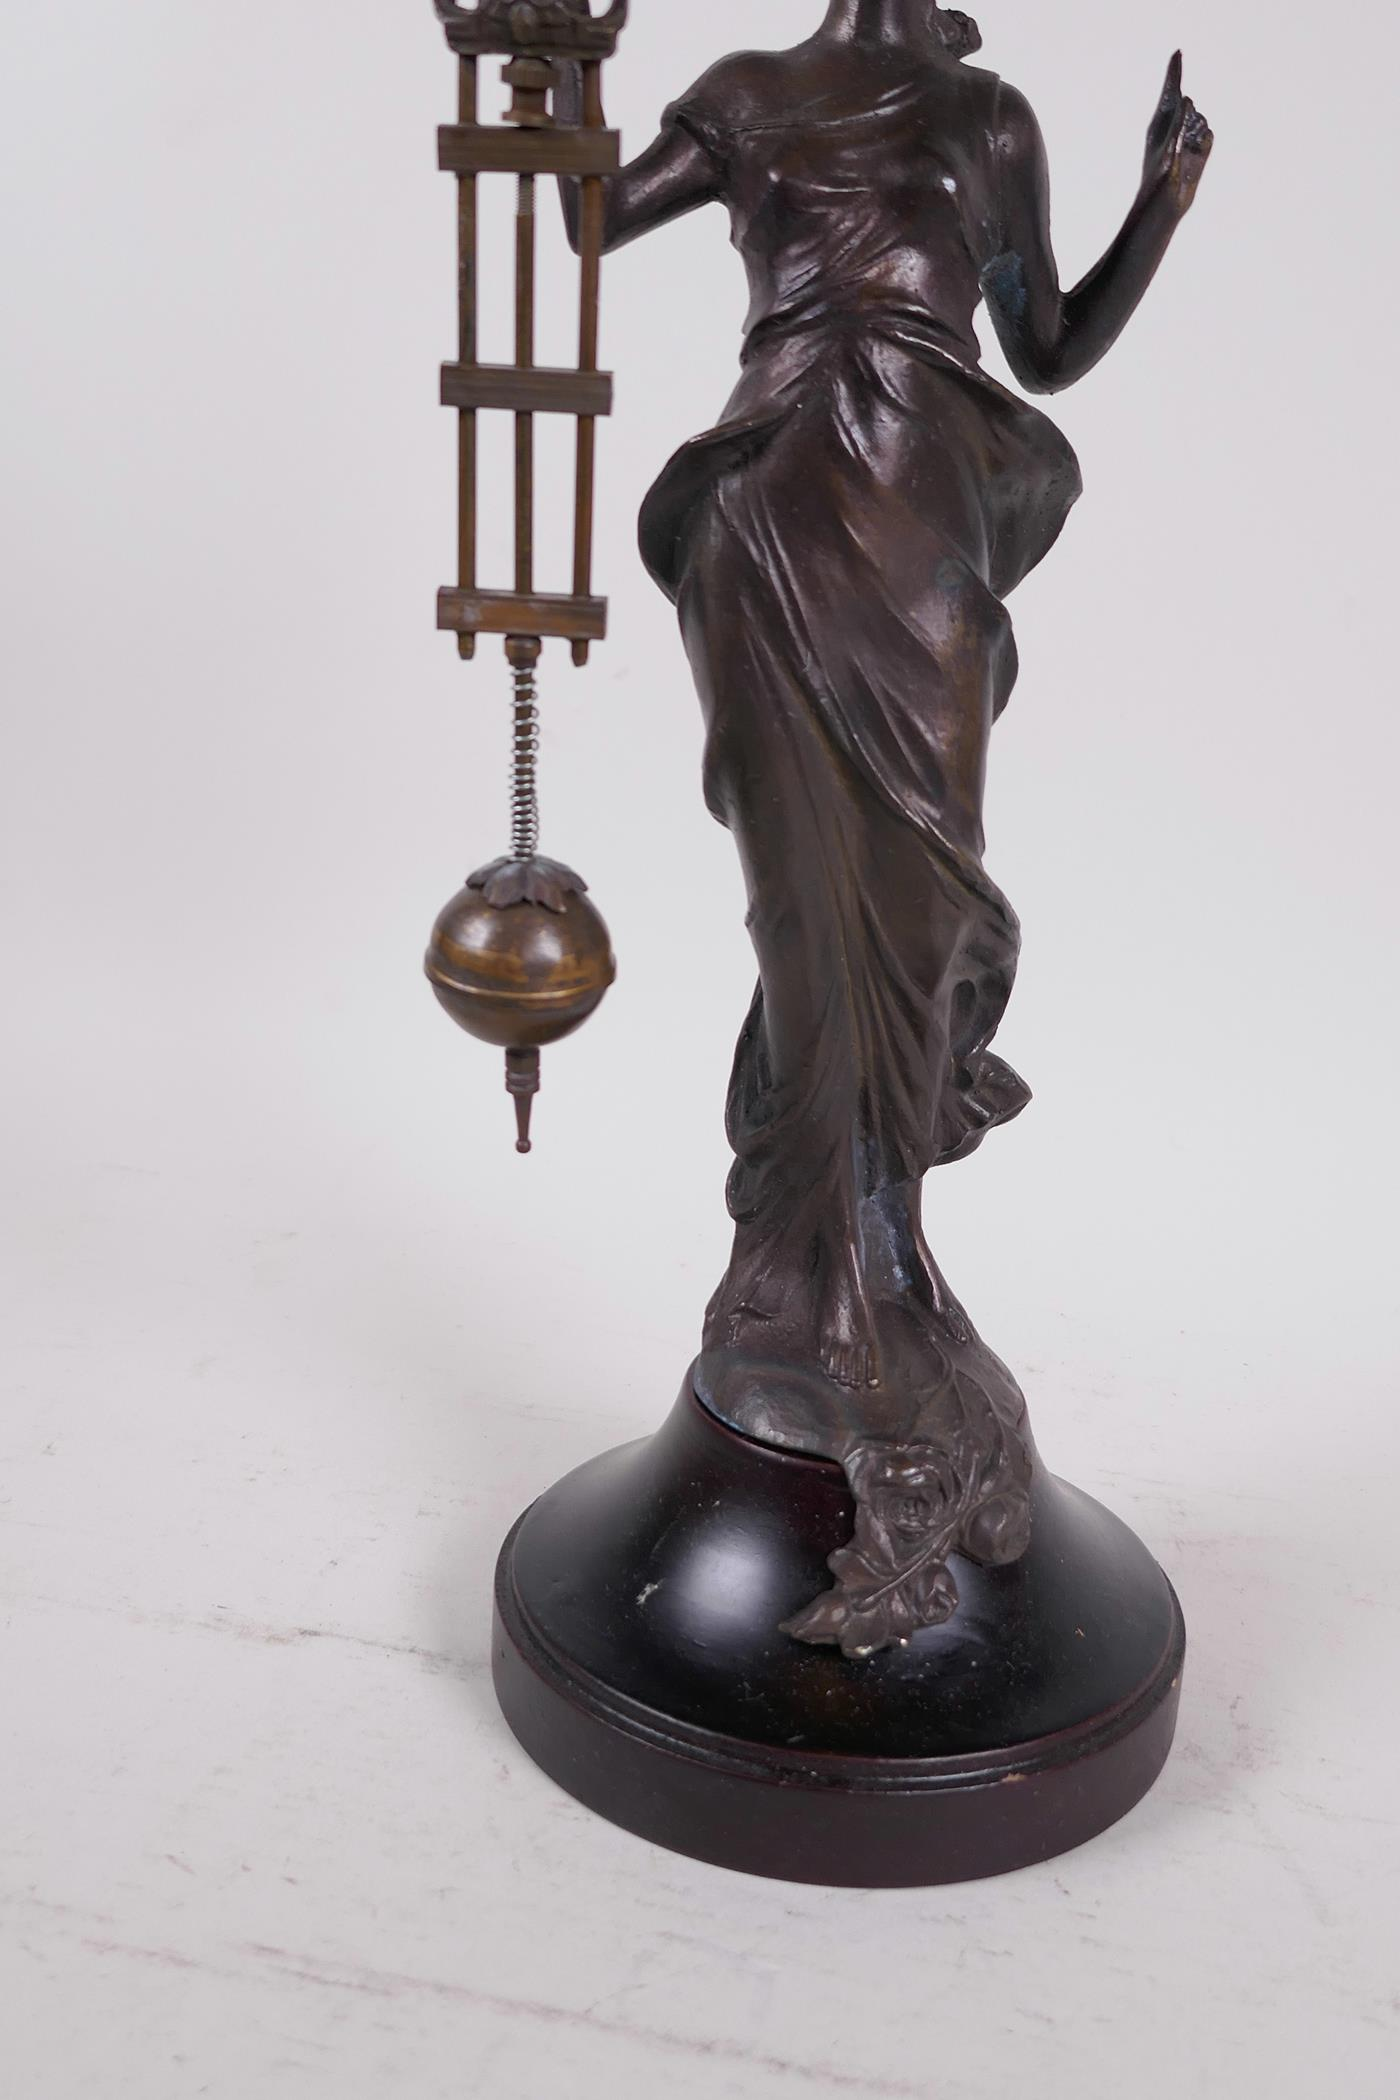 """A bronze mystery clock cast as an Art Nouveau style lady with the clock raised on one arm, 13"""" high - Image 4 of 4"""